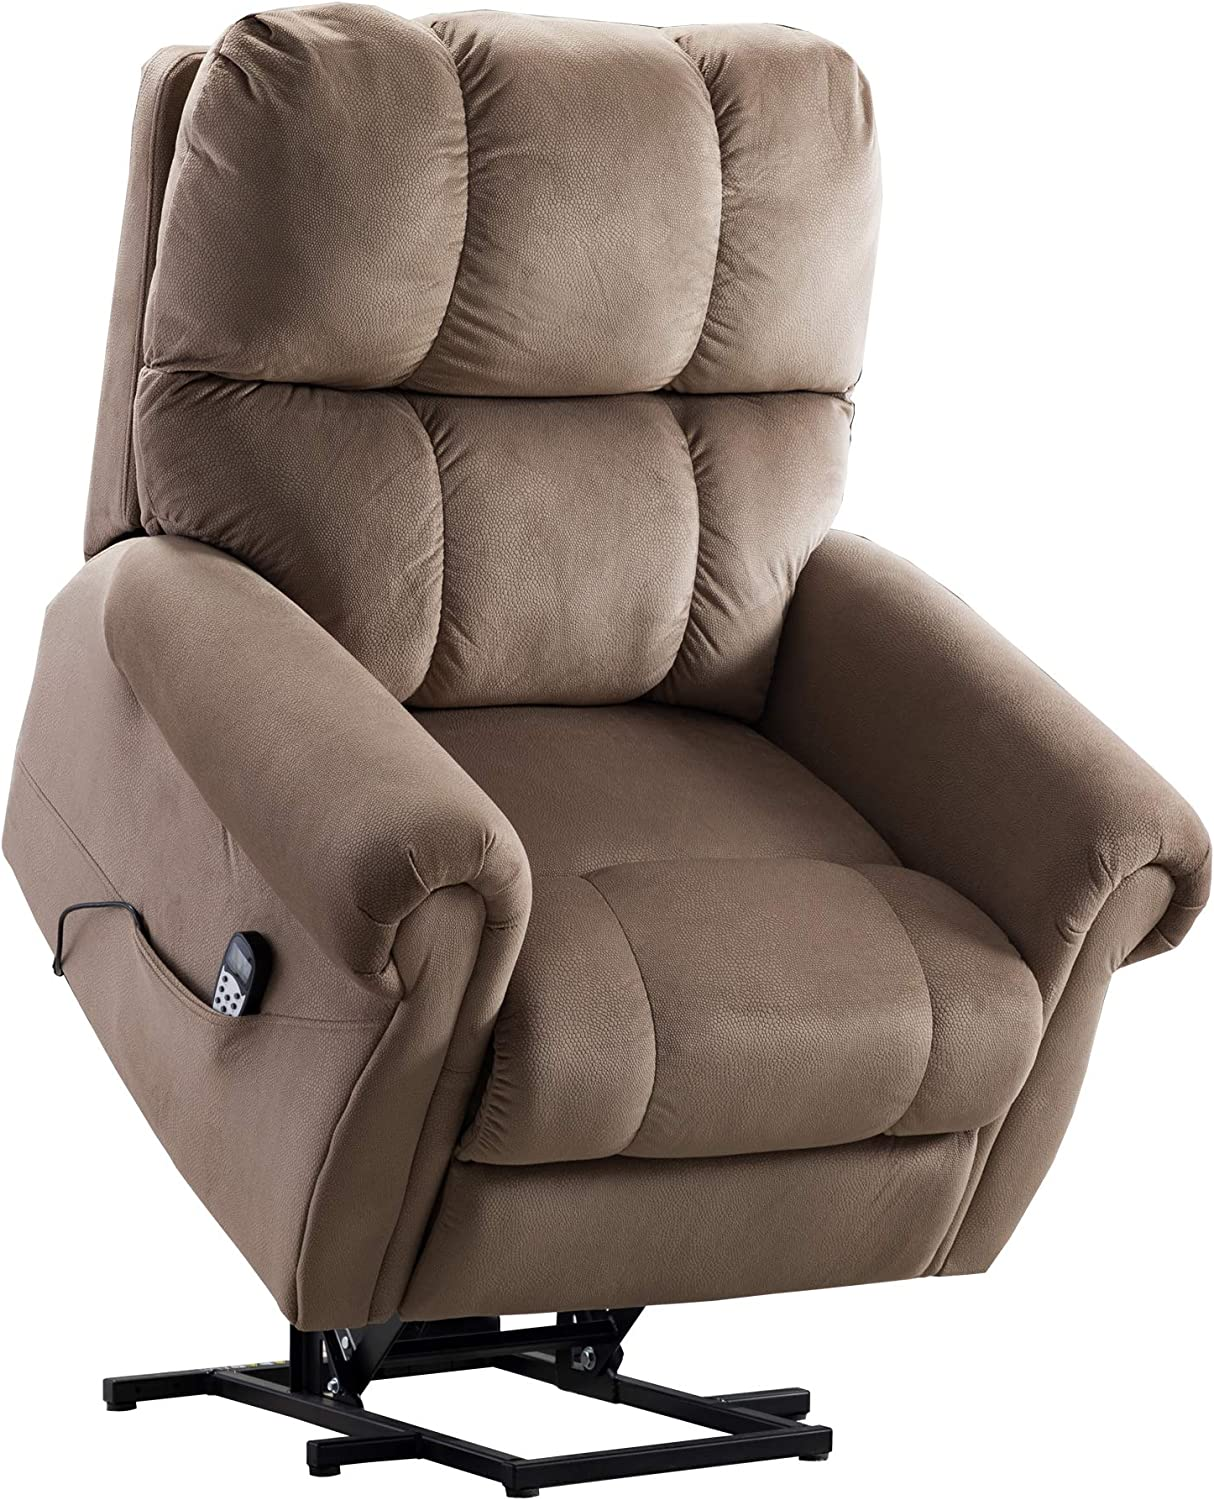 Merax Electric Power Lift Recliner Chair Lazy Boy Sofa with Massage and Heat for Elderly, Office or Living Room, Light Brown